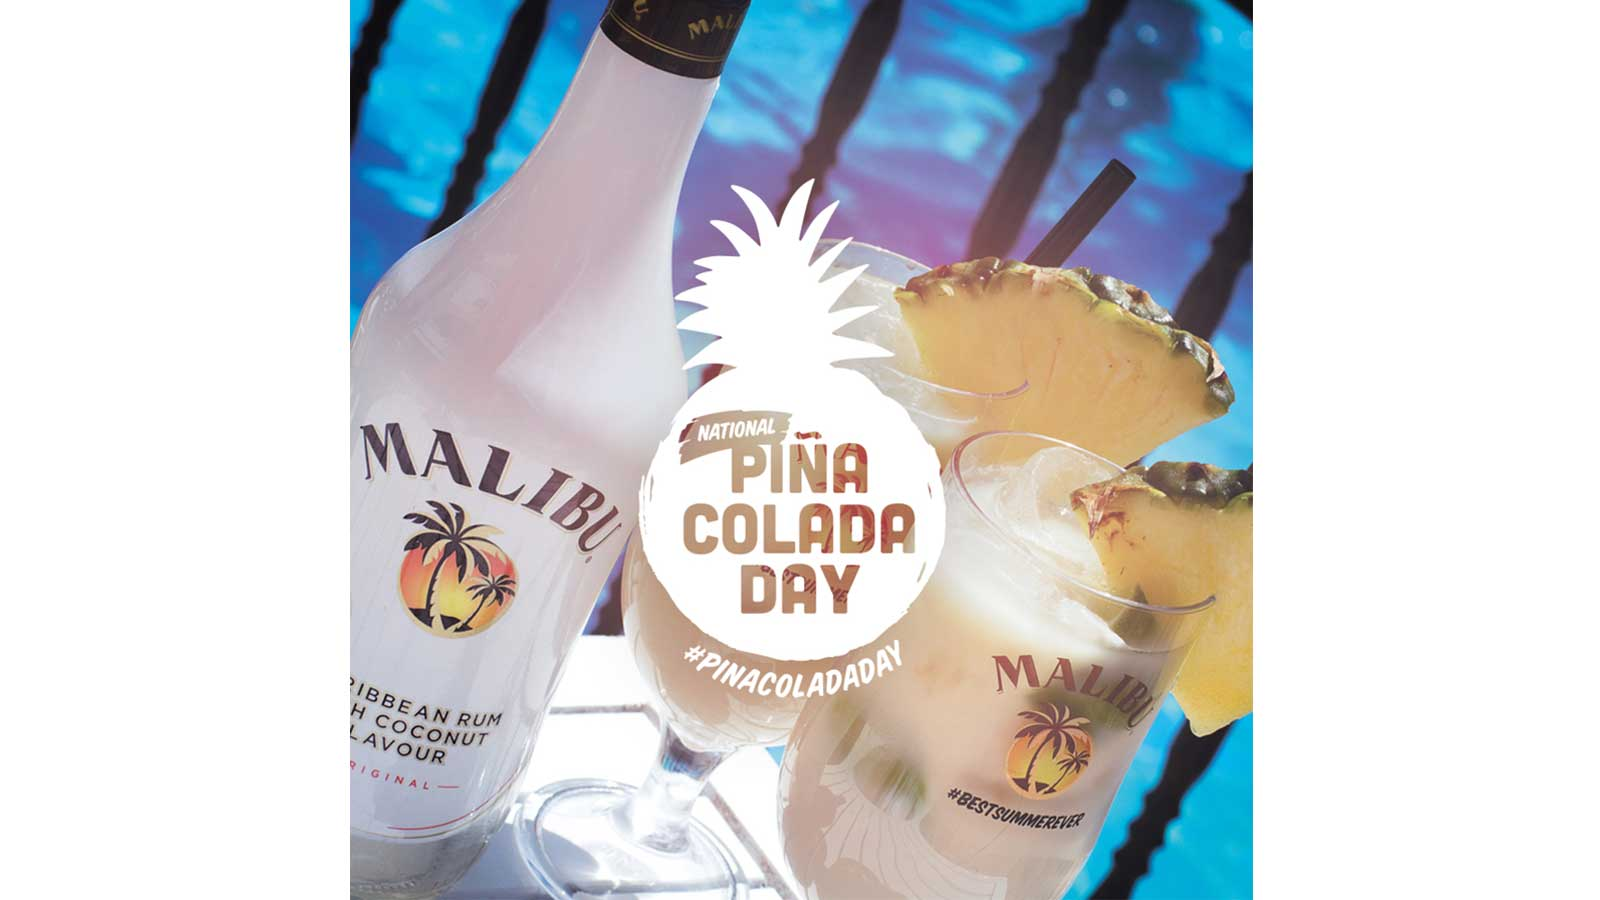 Malta celebrates National Pina Colada Day